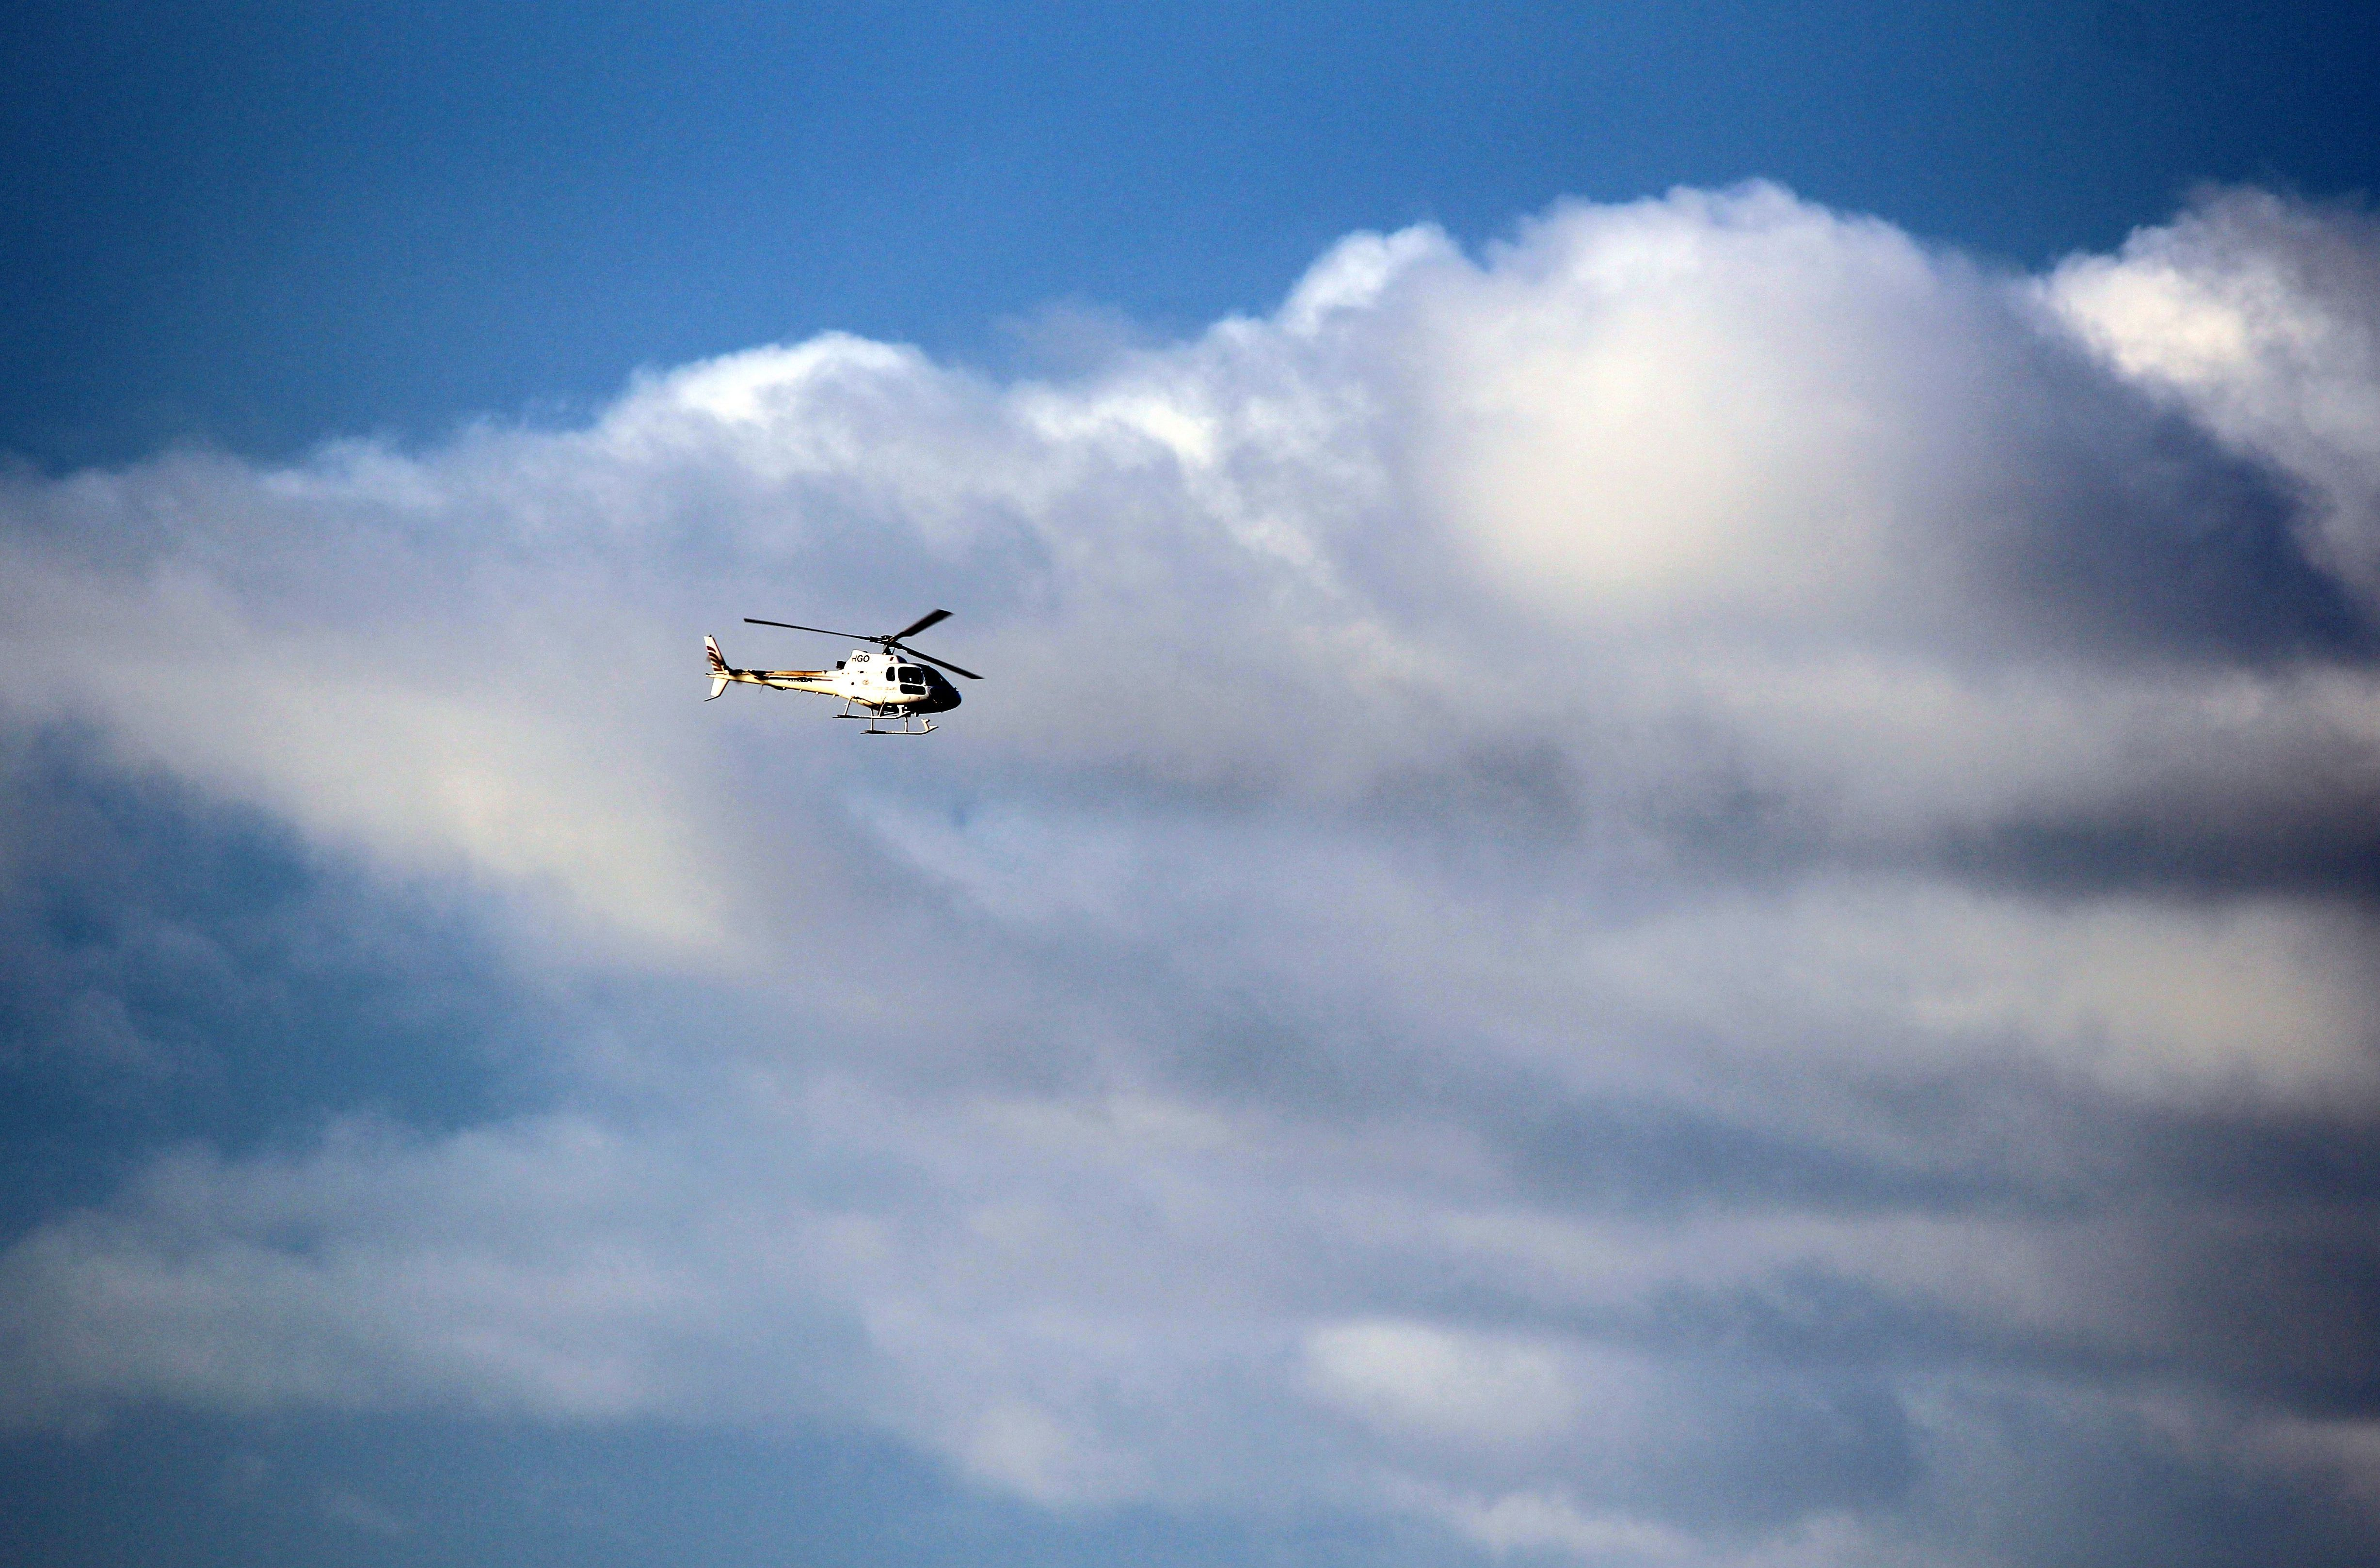 central helicopters nz with Mystery Over Flare Deployment on Nh90 Customers Still Frustrated By additionally Injured Mountain Biker also Heli Biking besides Helicopter Flights Sunshine Coast likewise How Much Of A Battery Pack Does Your Electric Car Need.